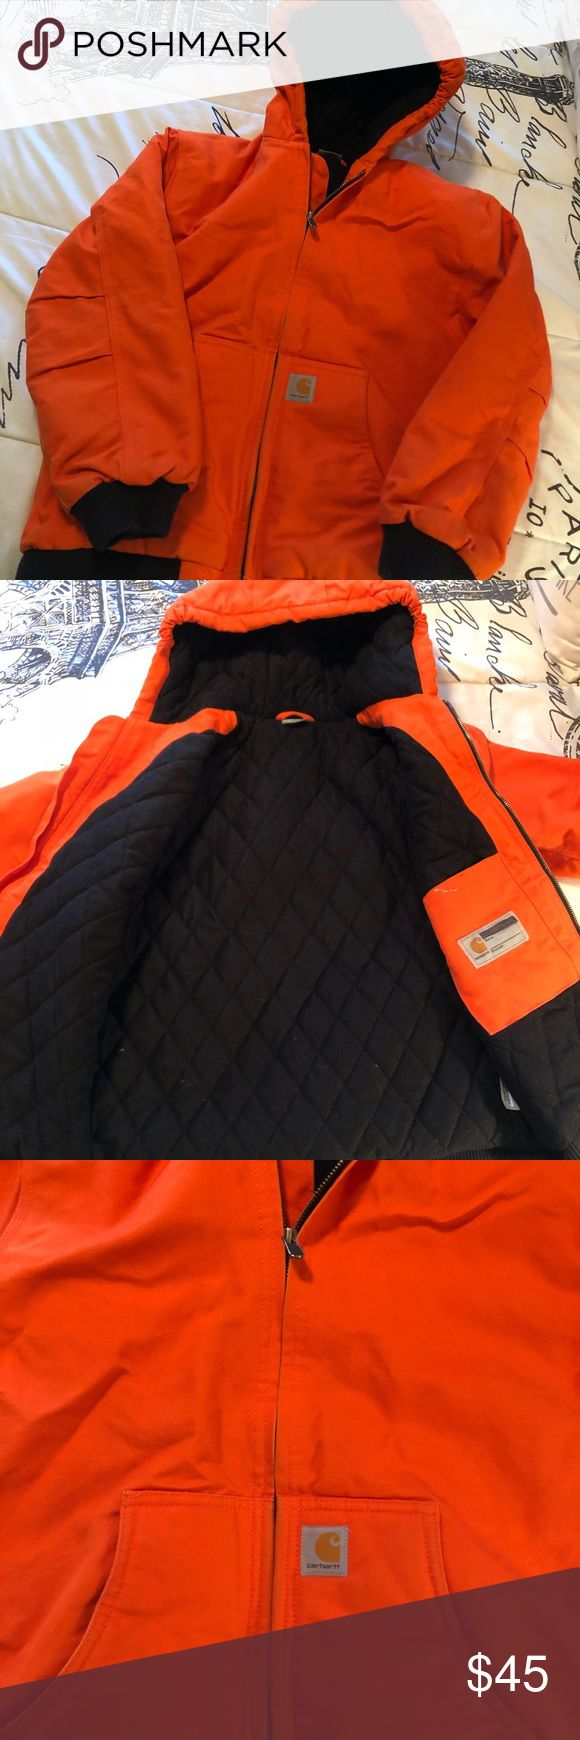 Boys Carhartt Winter Coat Very heavy thick warm winter coat! The typical carhartt heavy duty material with interior quilting for extra warm! This coat is in great condition. Small mark on the back see last photo. Carhartt Jackets & Coats